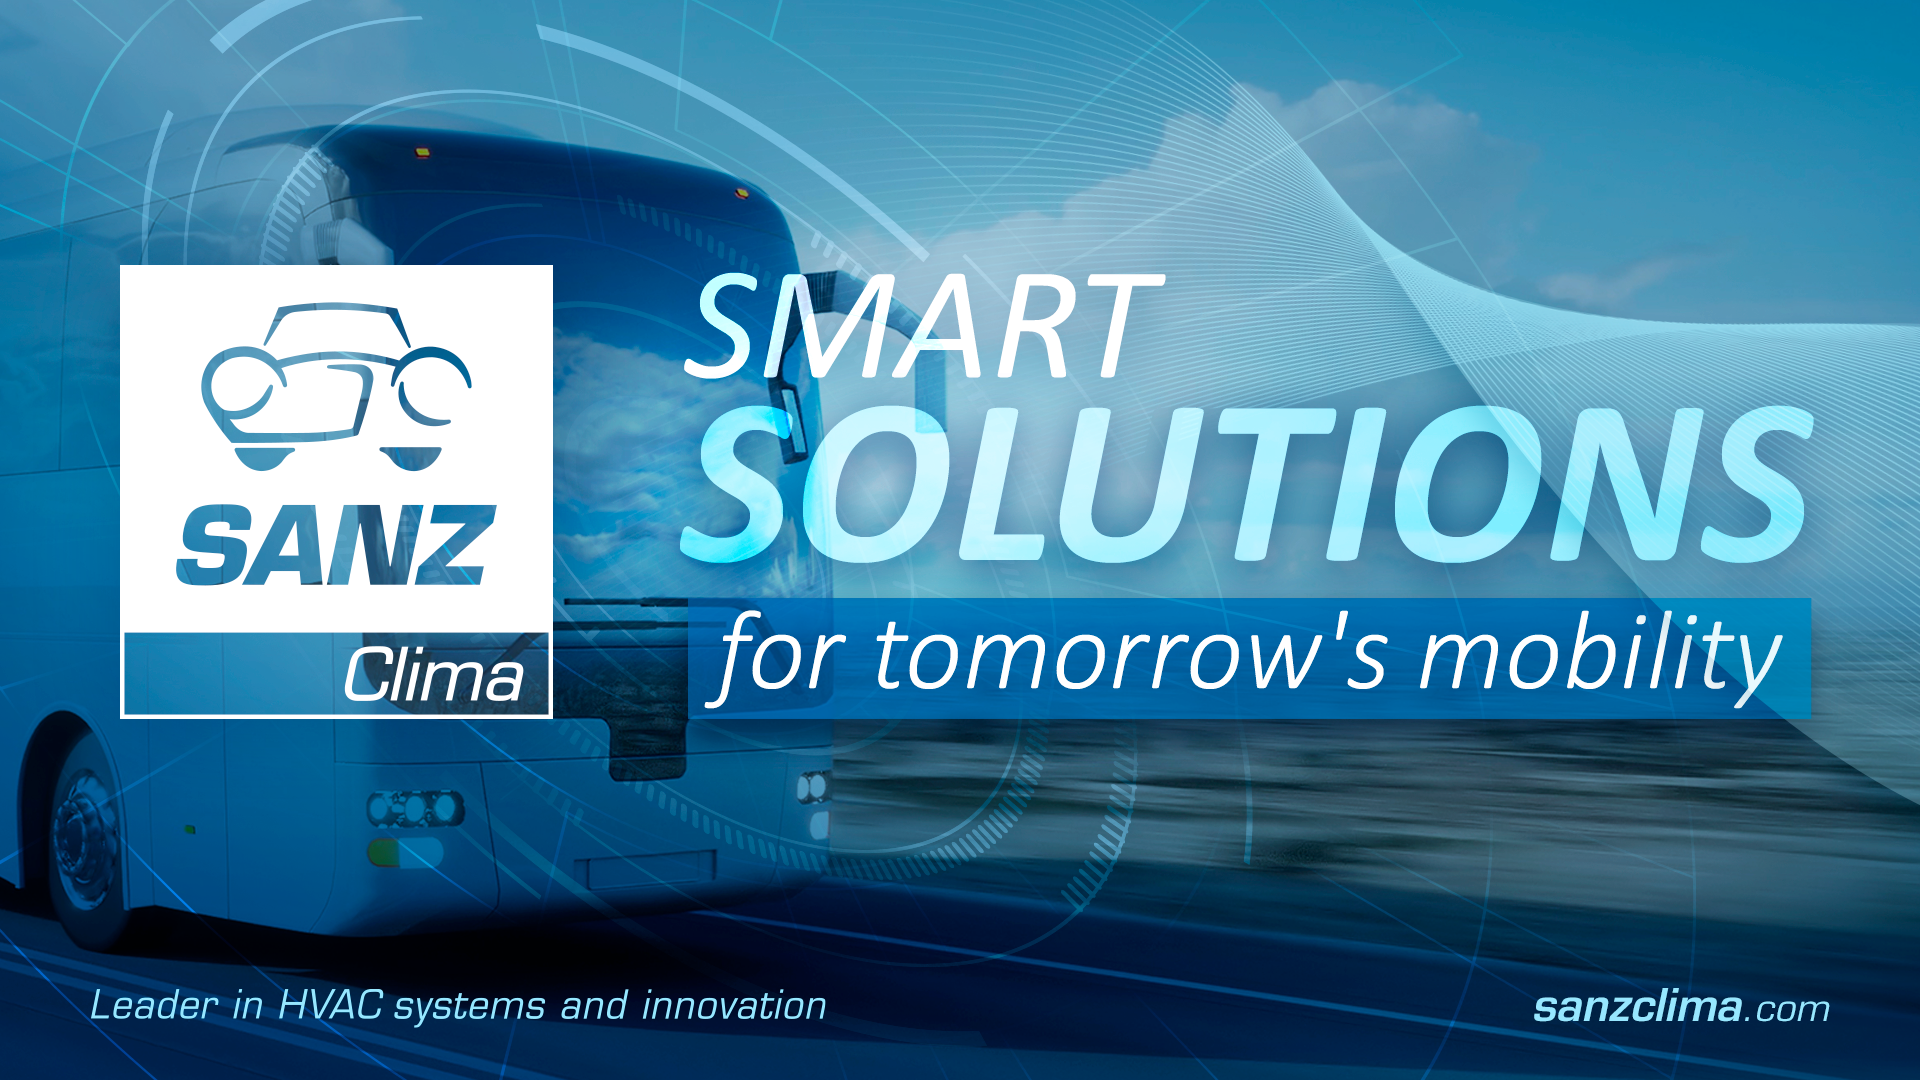 Smart Solutions for tomorrow's mobility by Sanz Clima